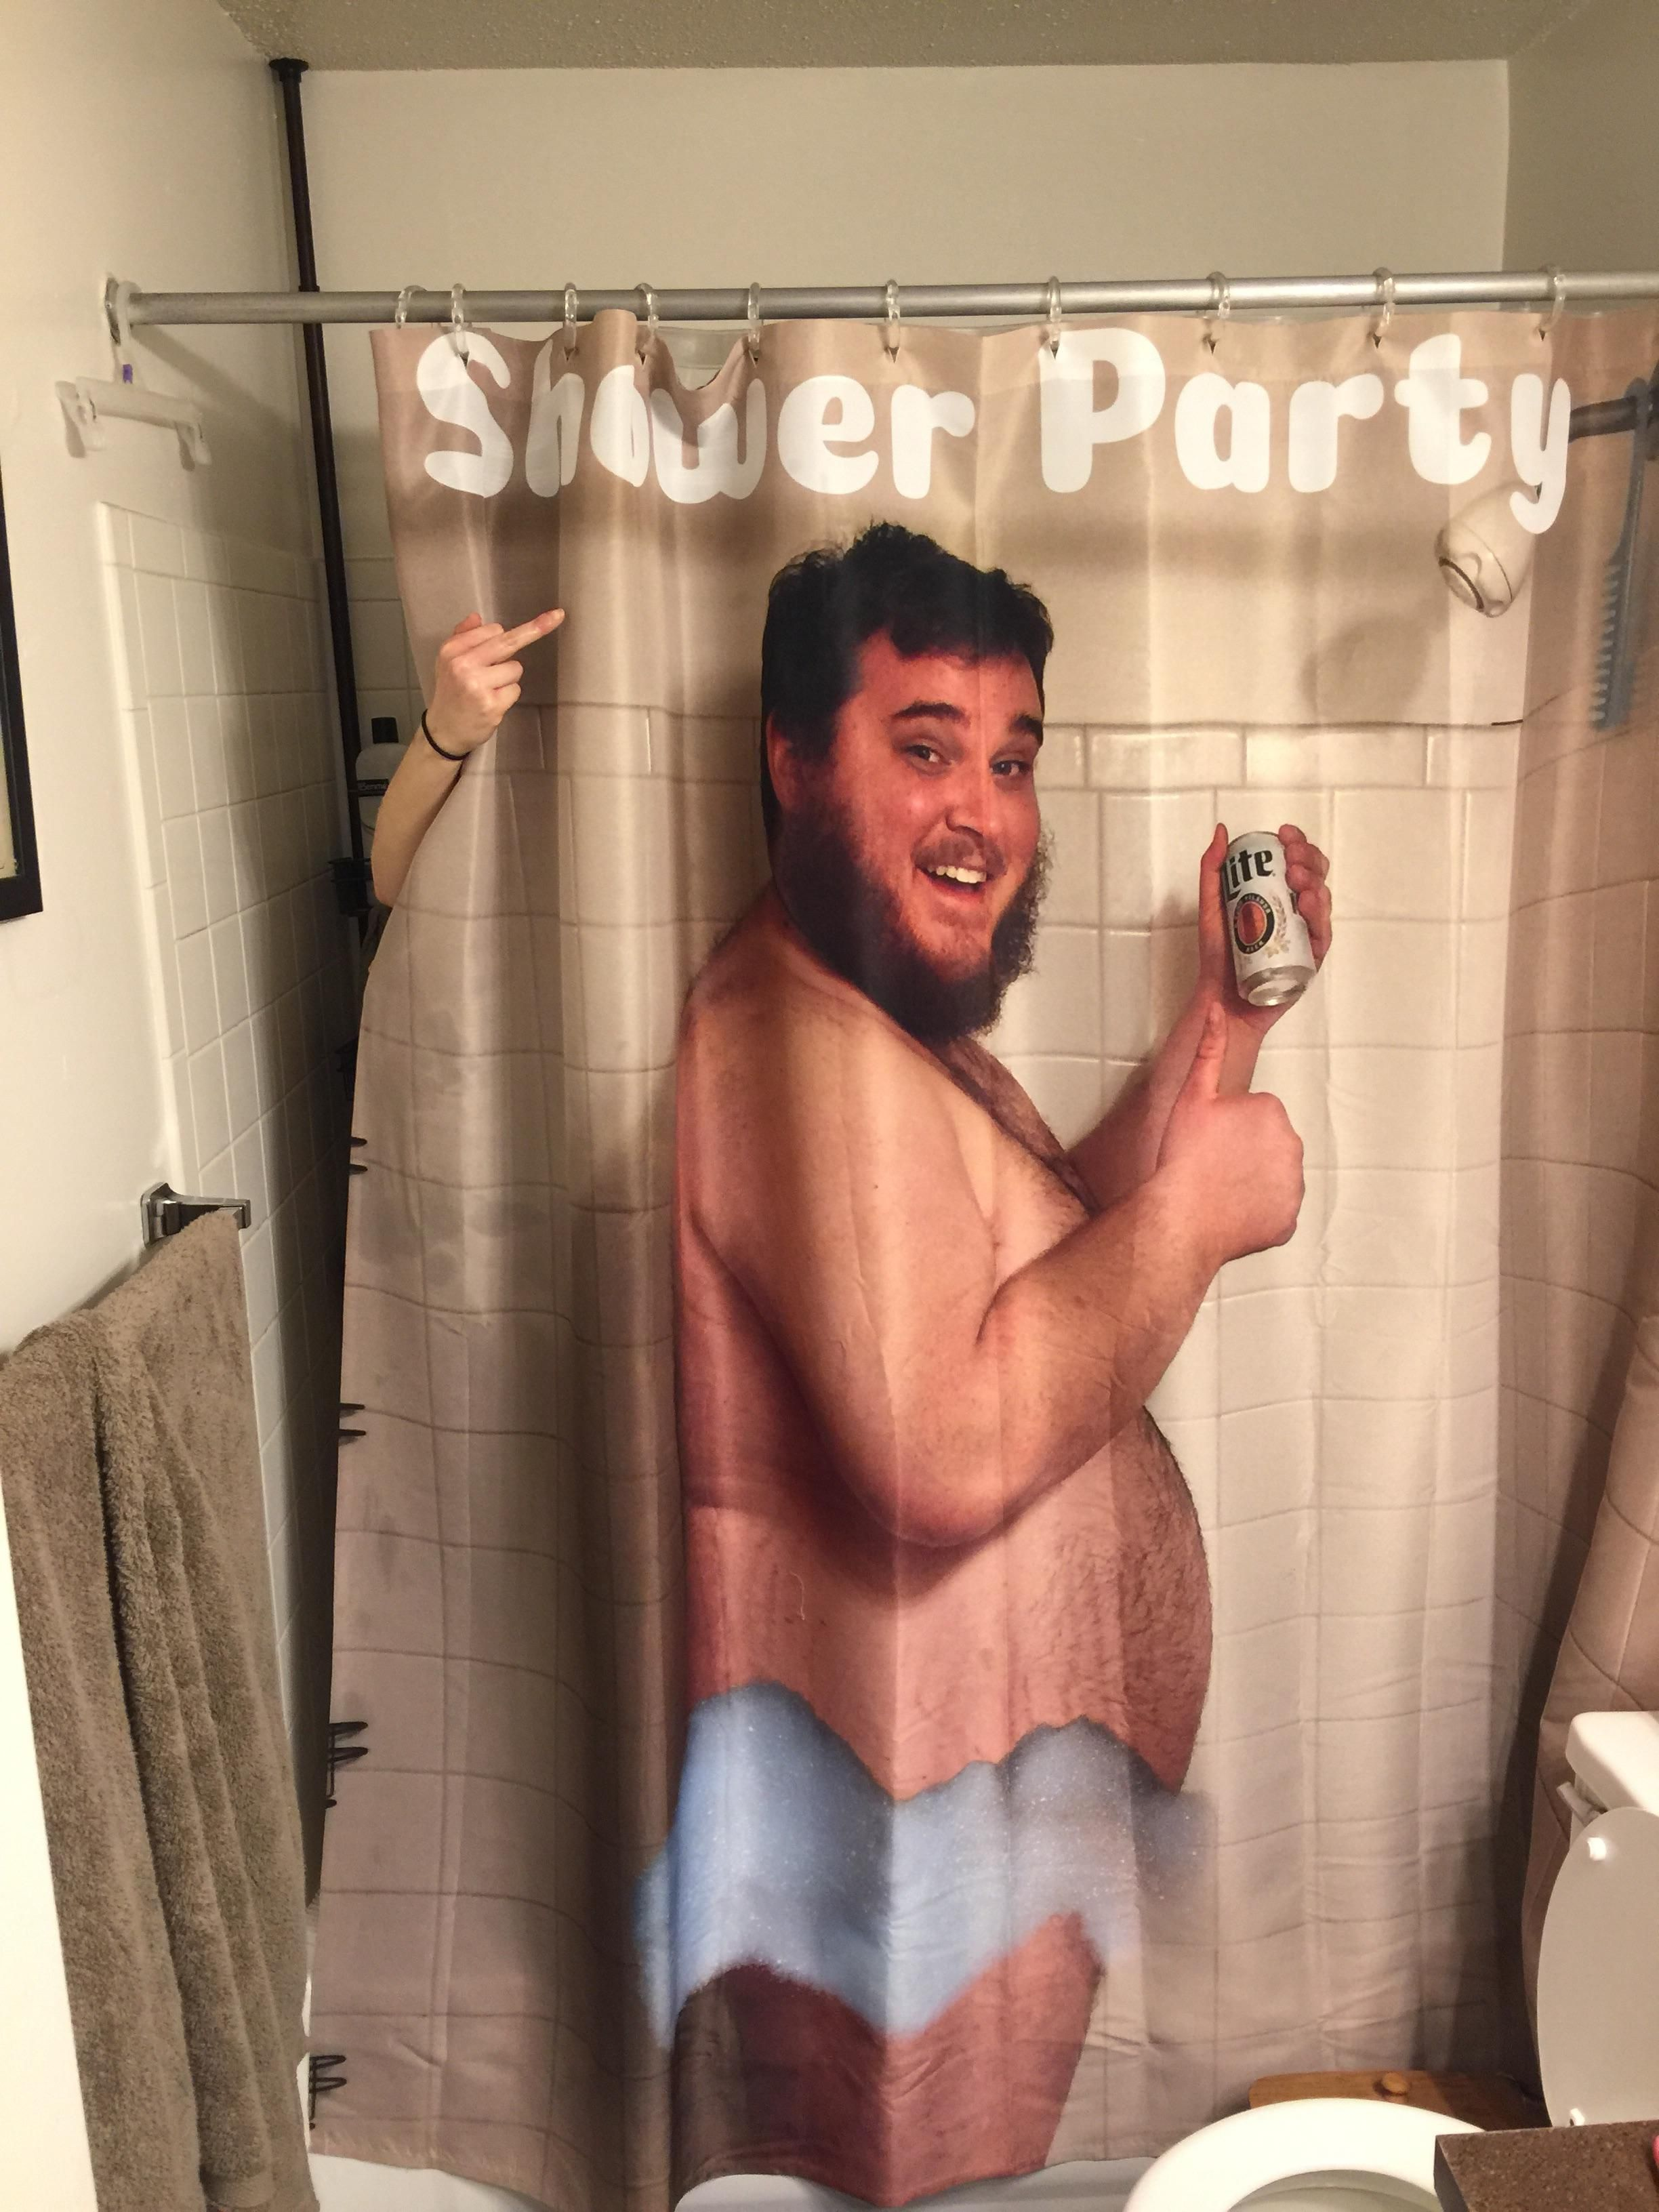 I made my wife a shower curtain of me drinking a beer in the shower. She wasn't impressed.